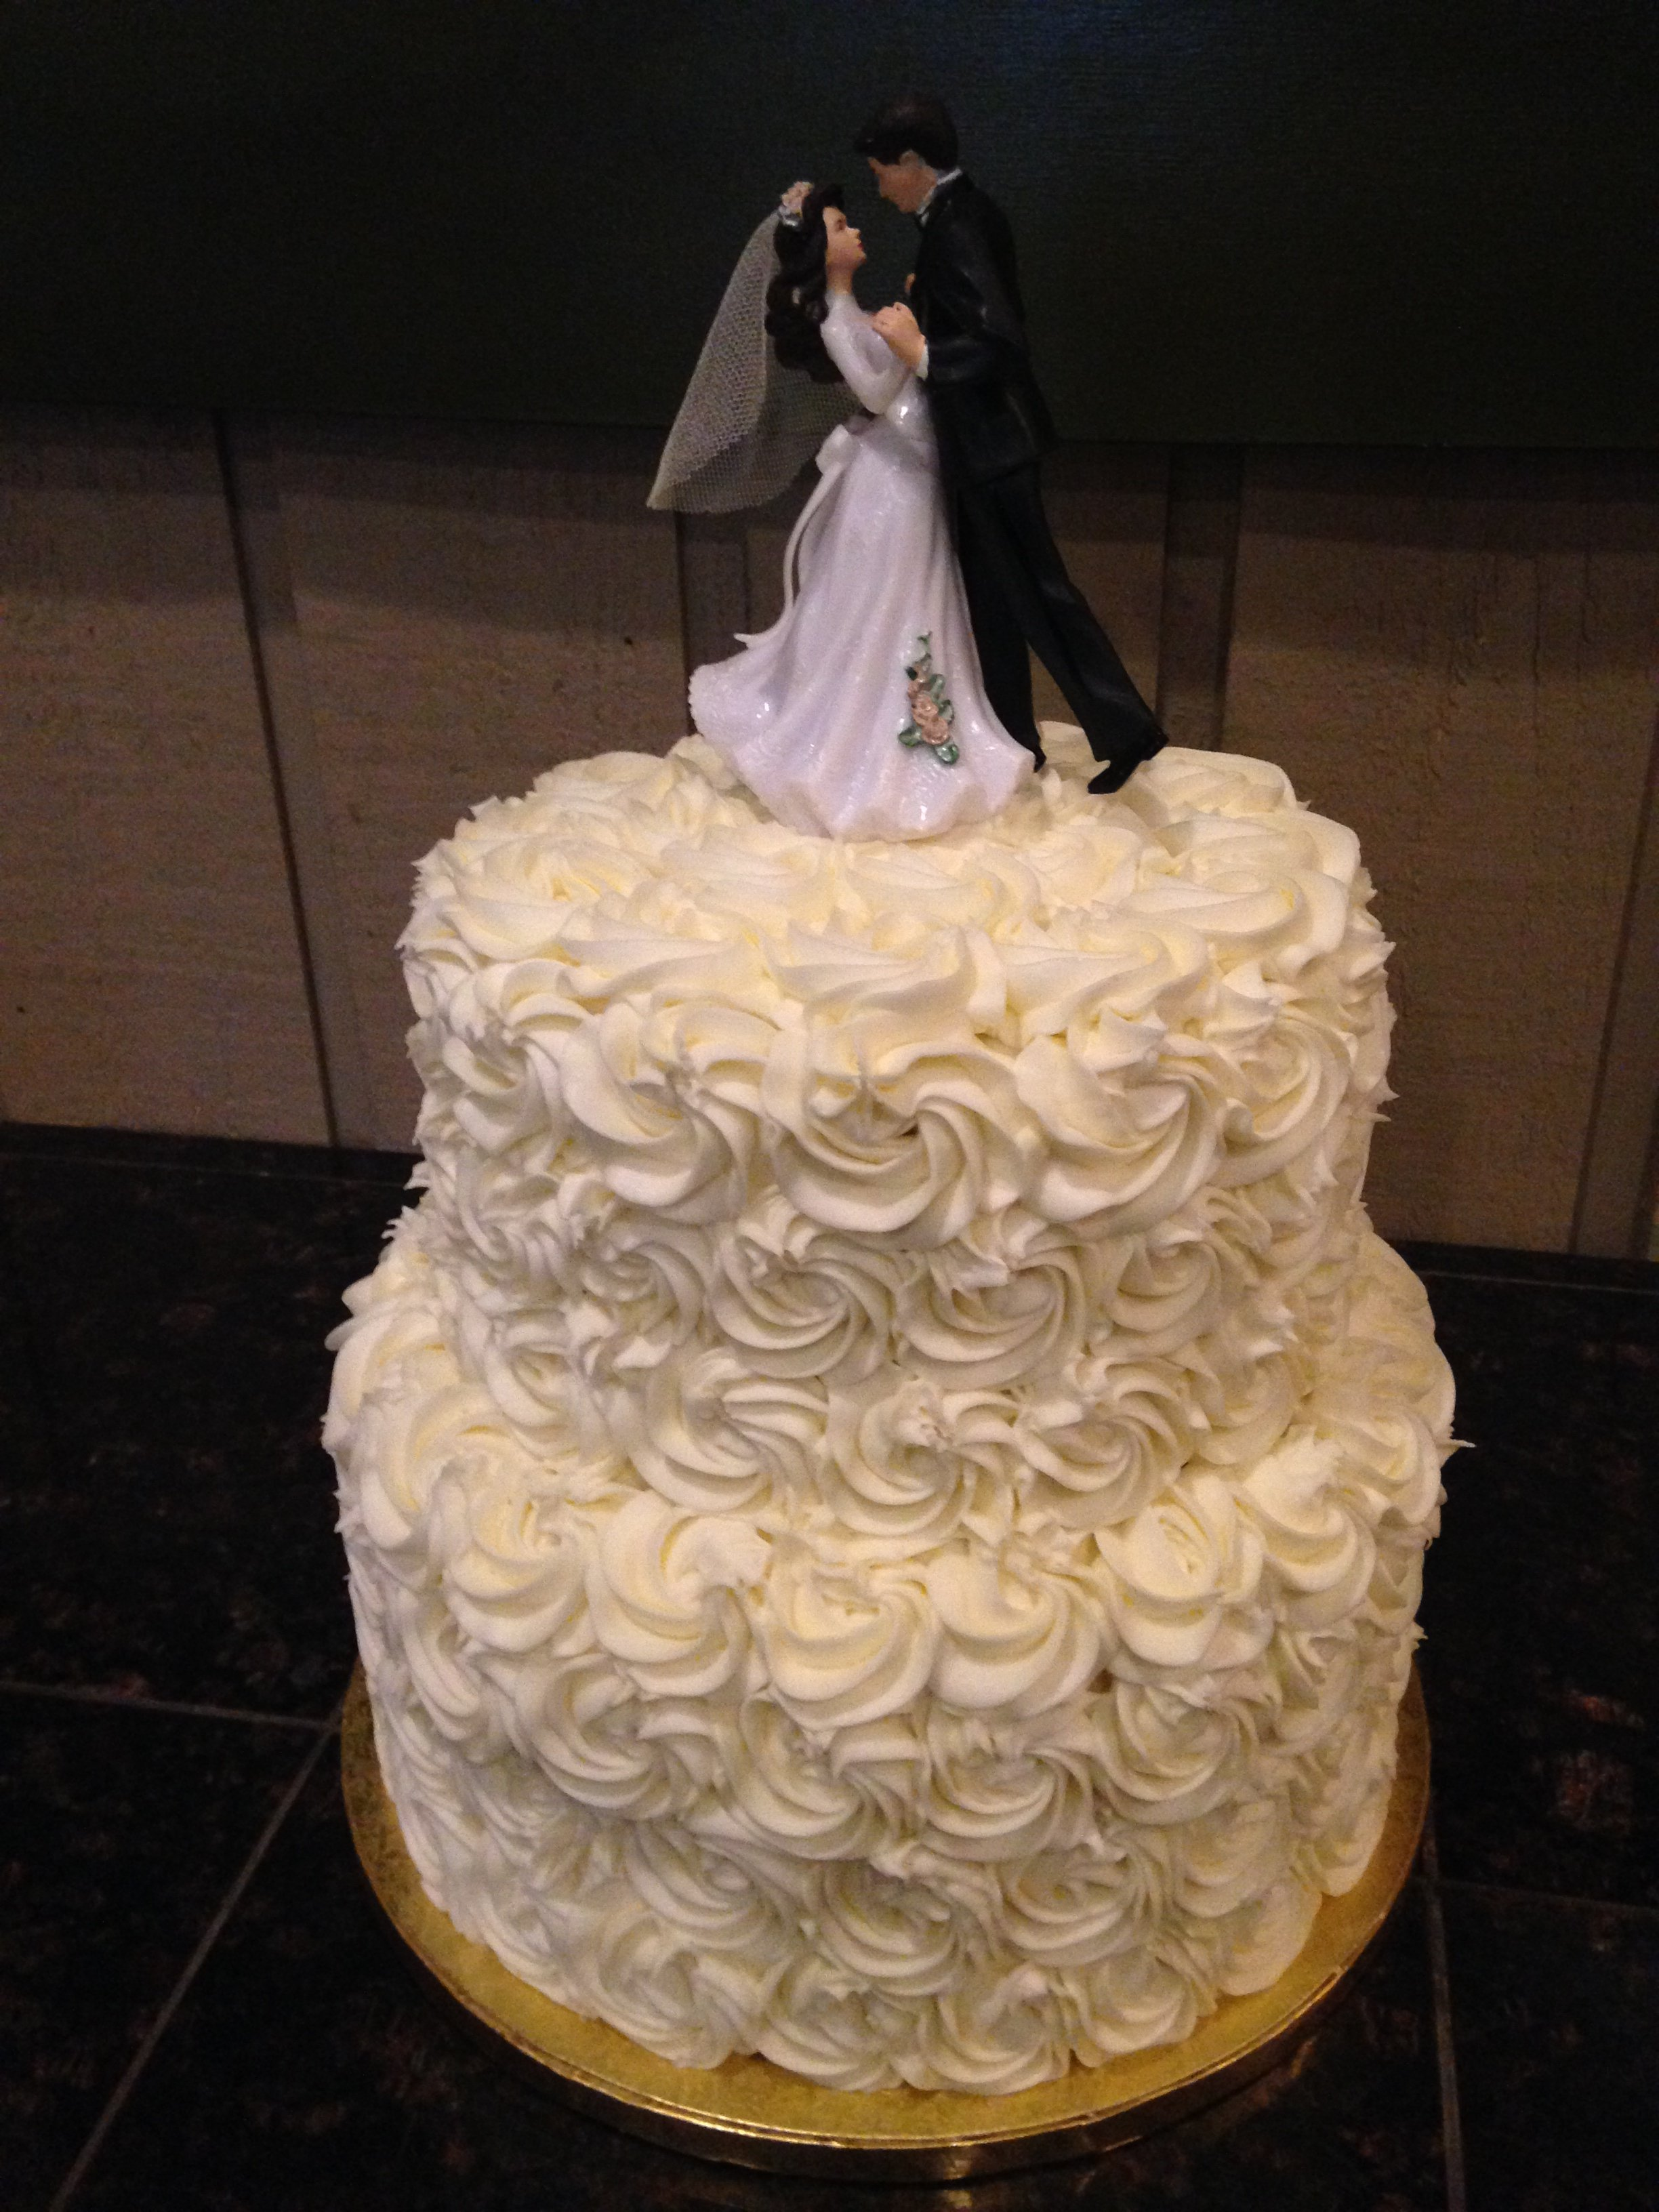 Wedding Cake Prices Vary Between $5.50 And $8 Per Slice. Flavor, Custom  Design And Location All Factor In Cake Price.